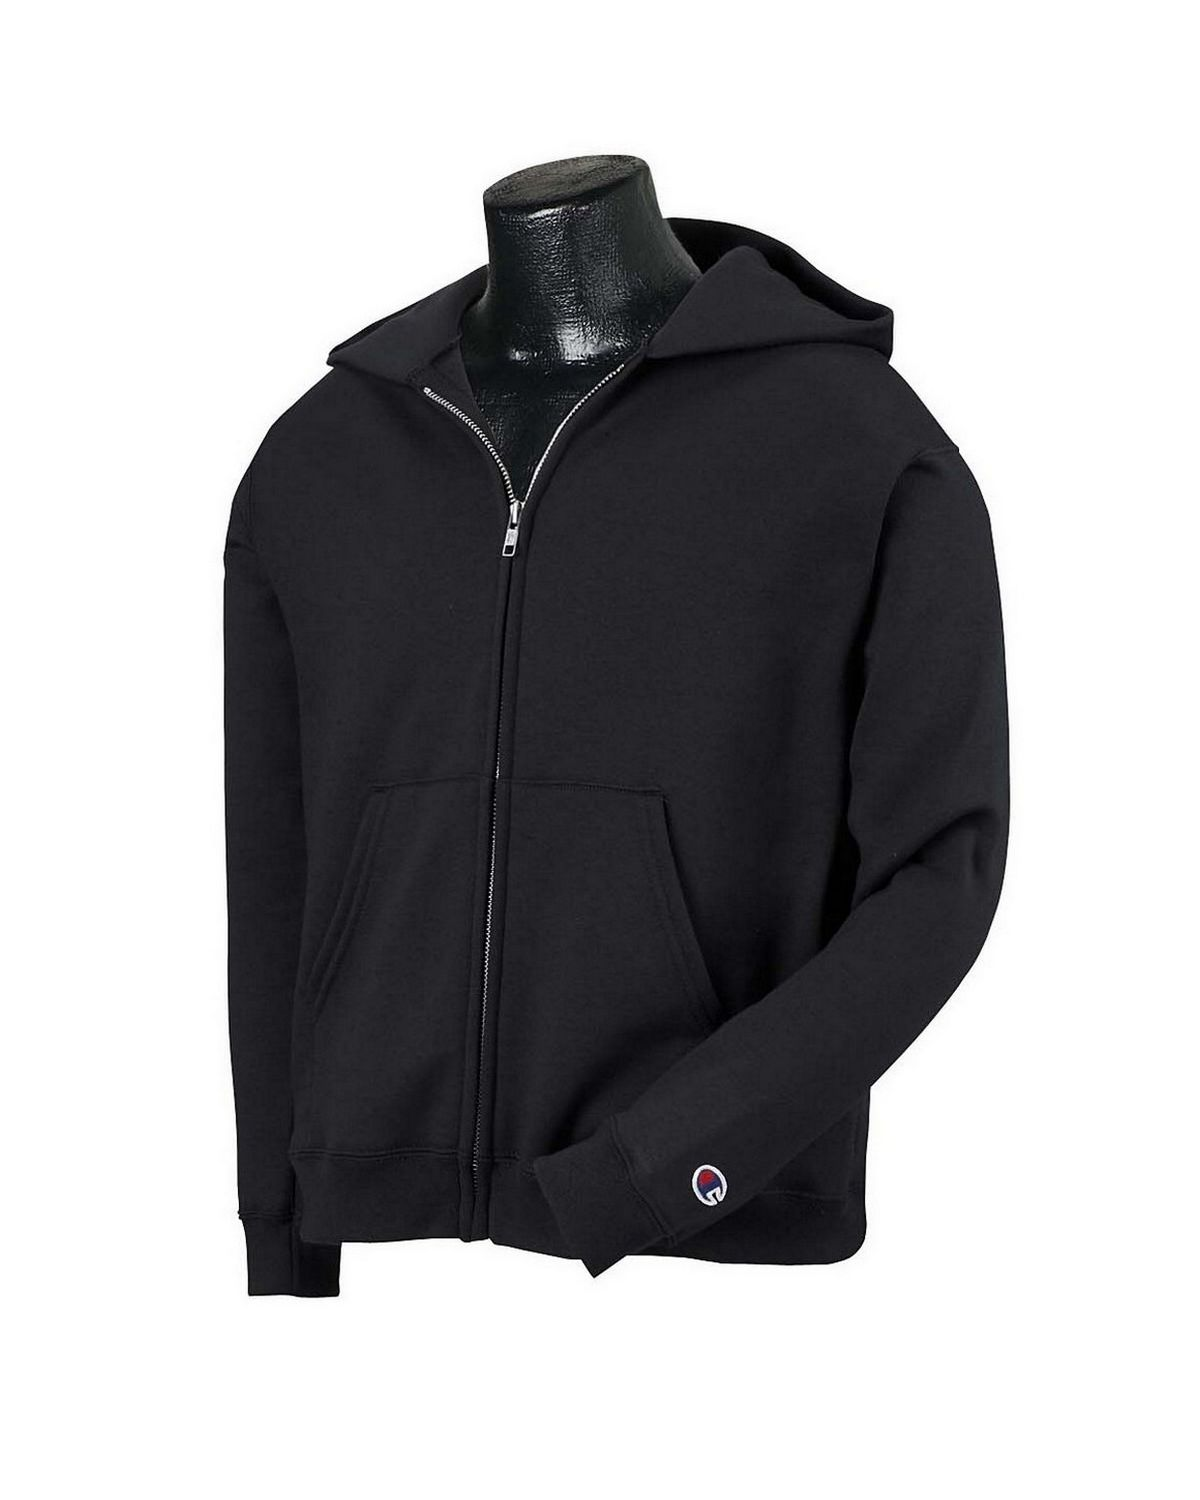 Champion S890 Youth EcoSmart Full Zip Hood - Black - L S890